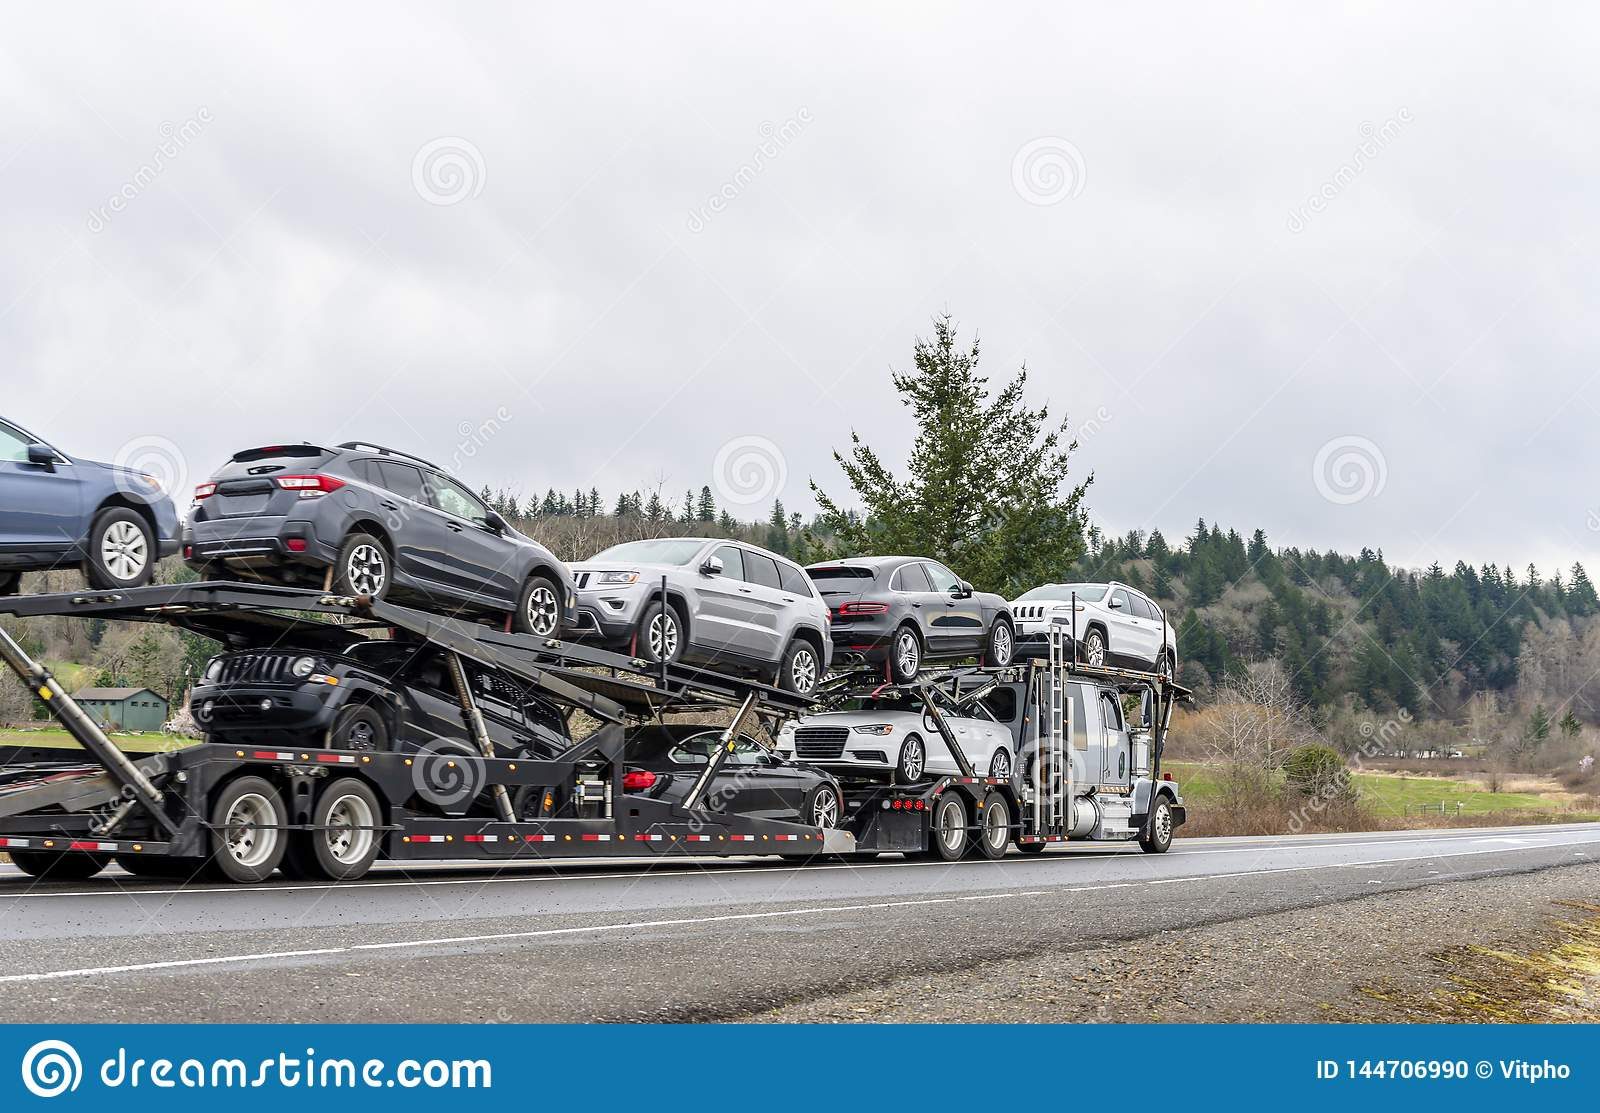 Big Rig Car Hauler Semi Truck Transporting Cars On Special Two Level